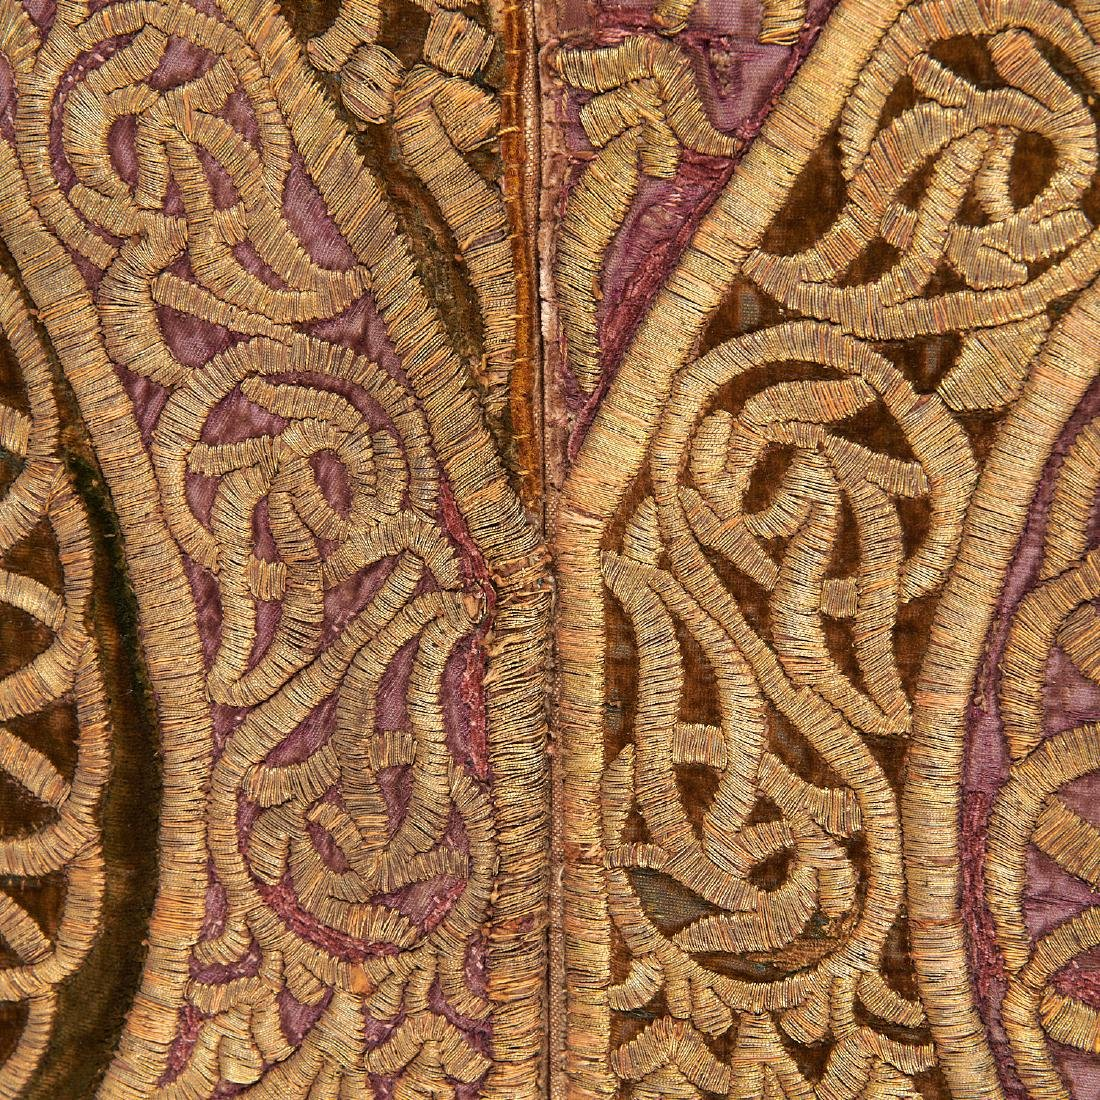 Large Mughal silk and metal threaded tapestry - 5